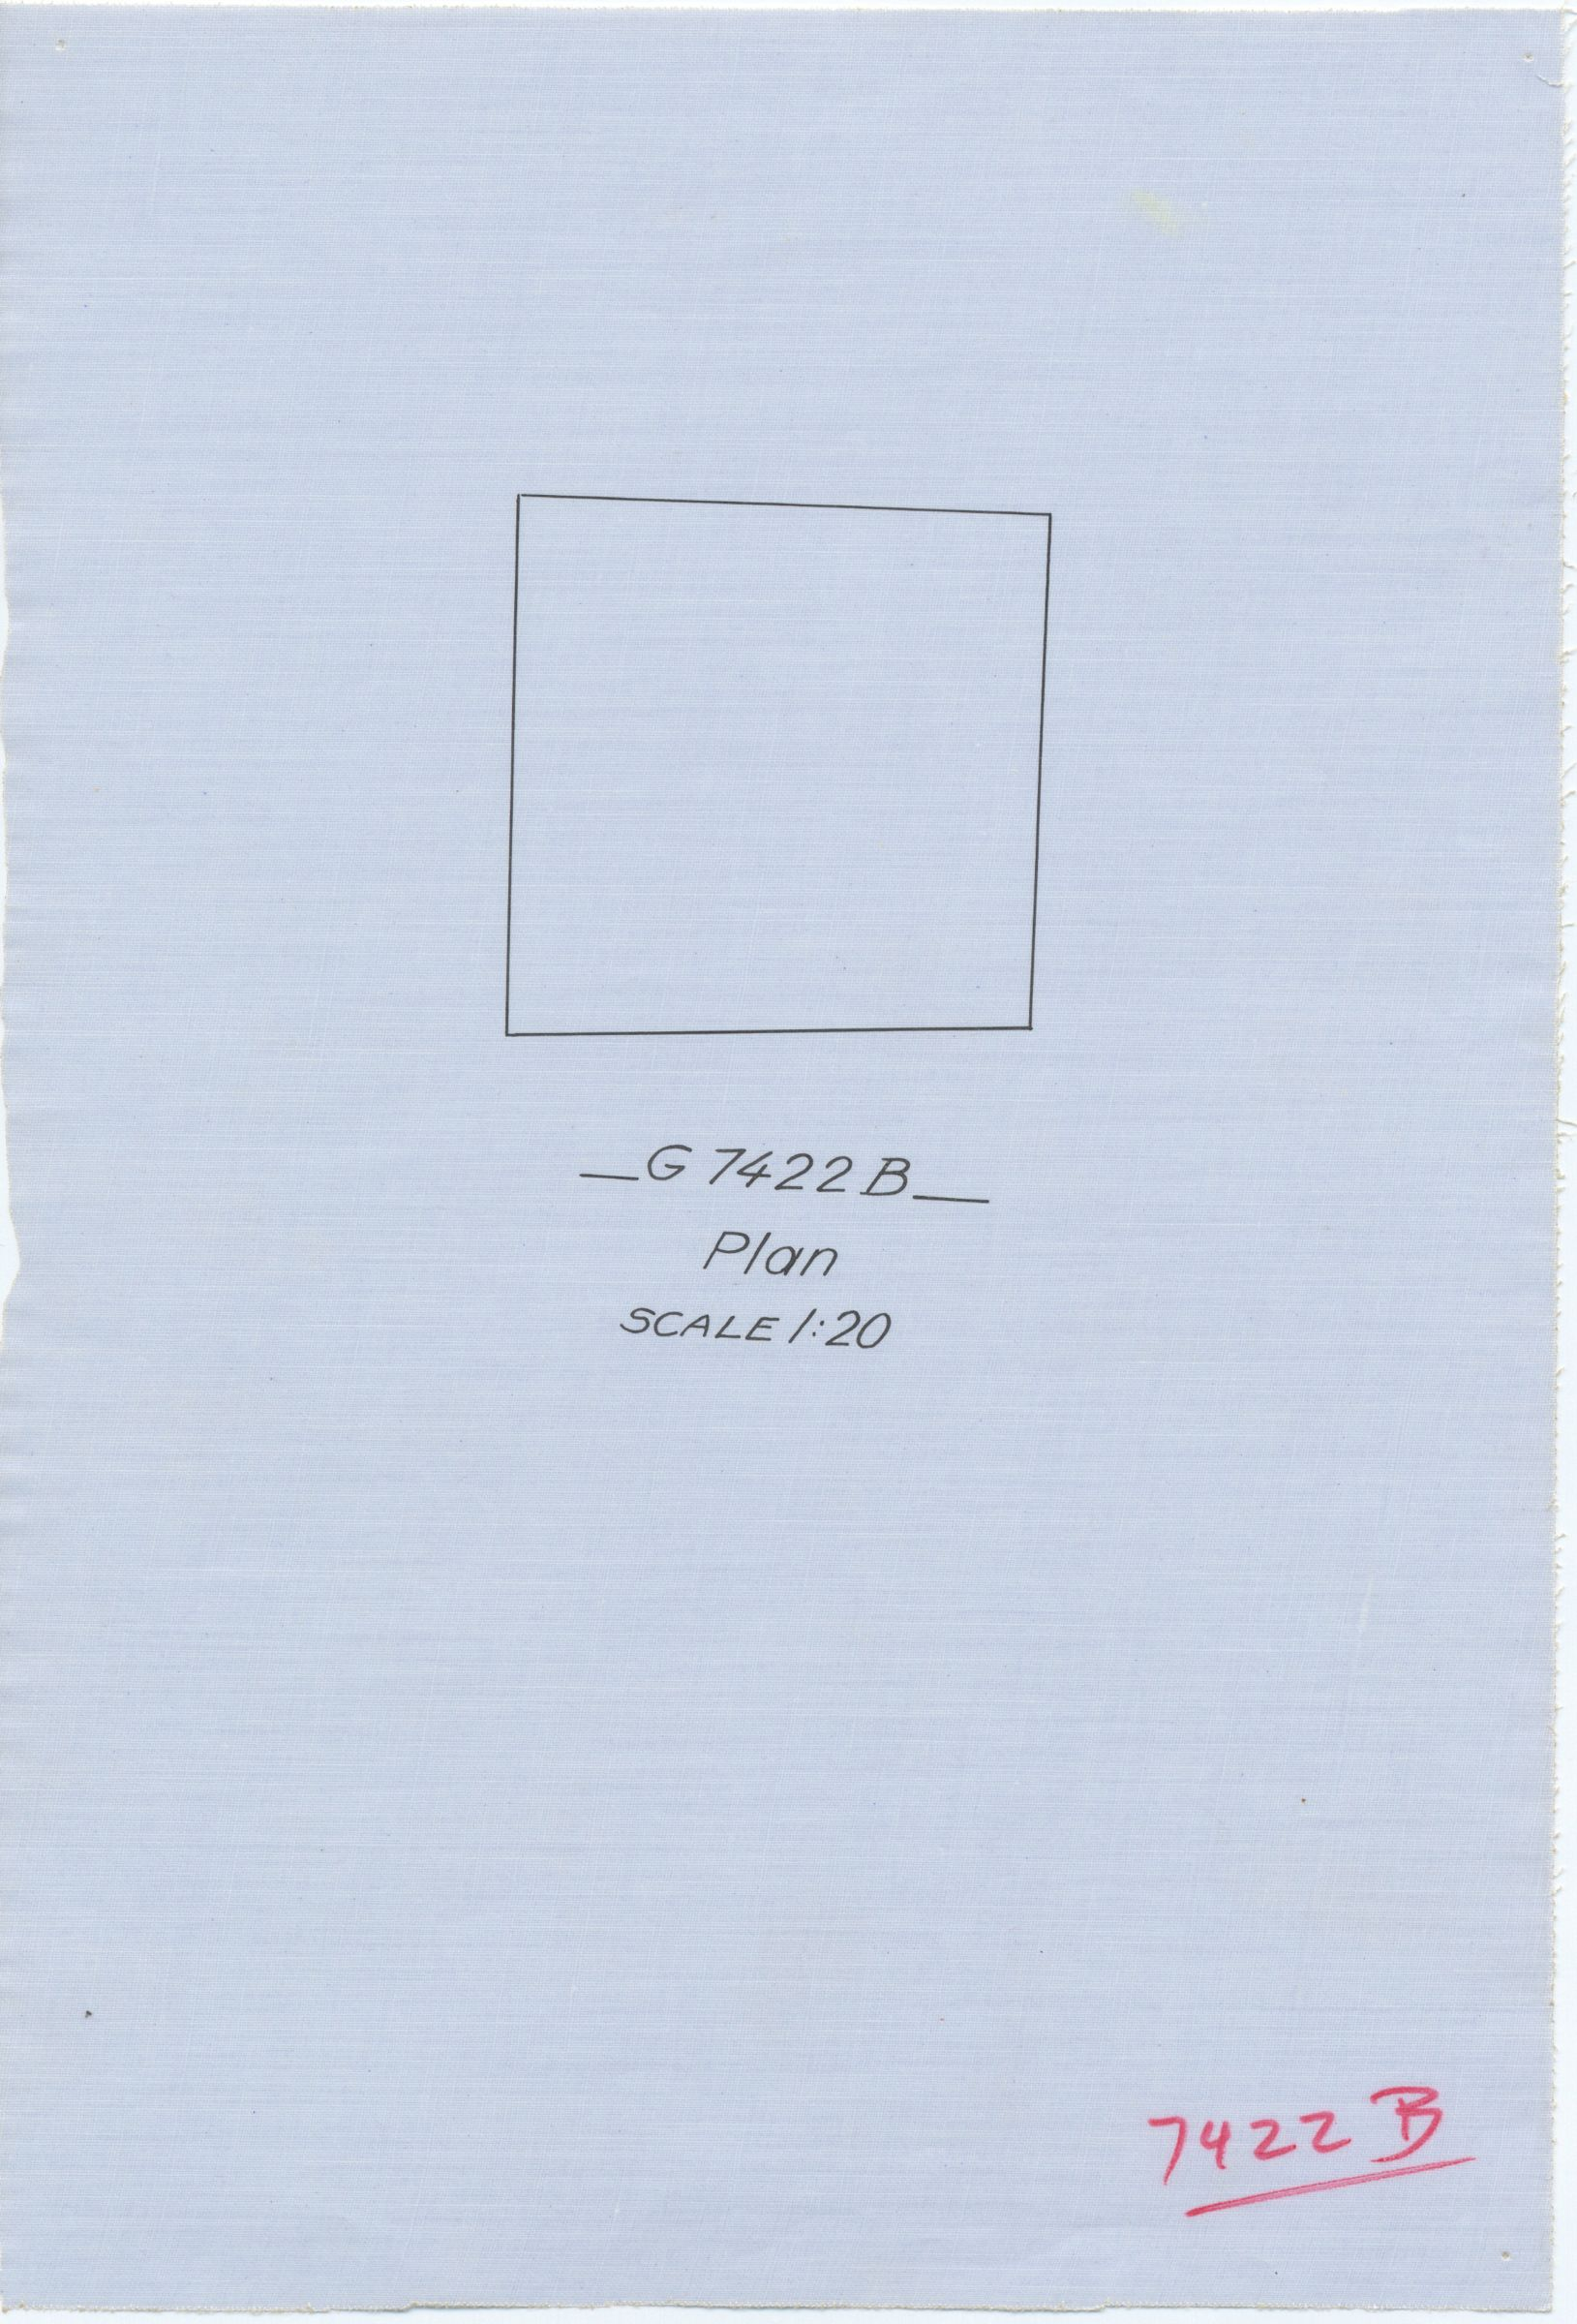 Maps and plans: G 7422, Shaft B